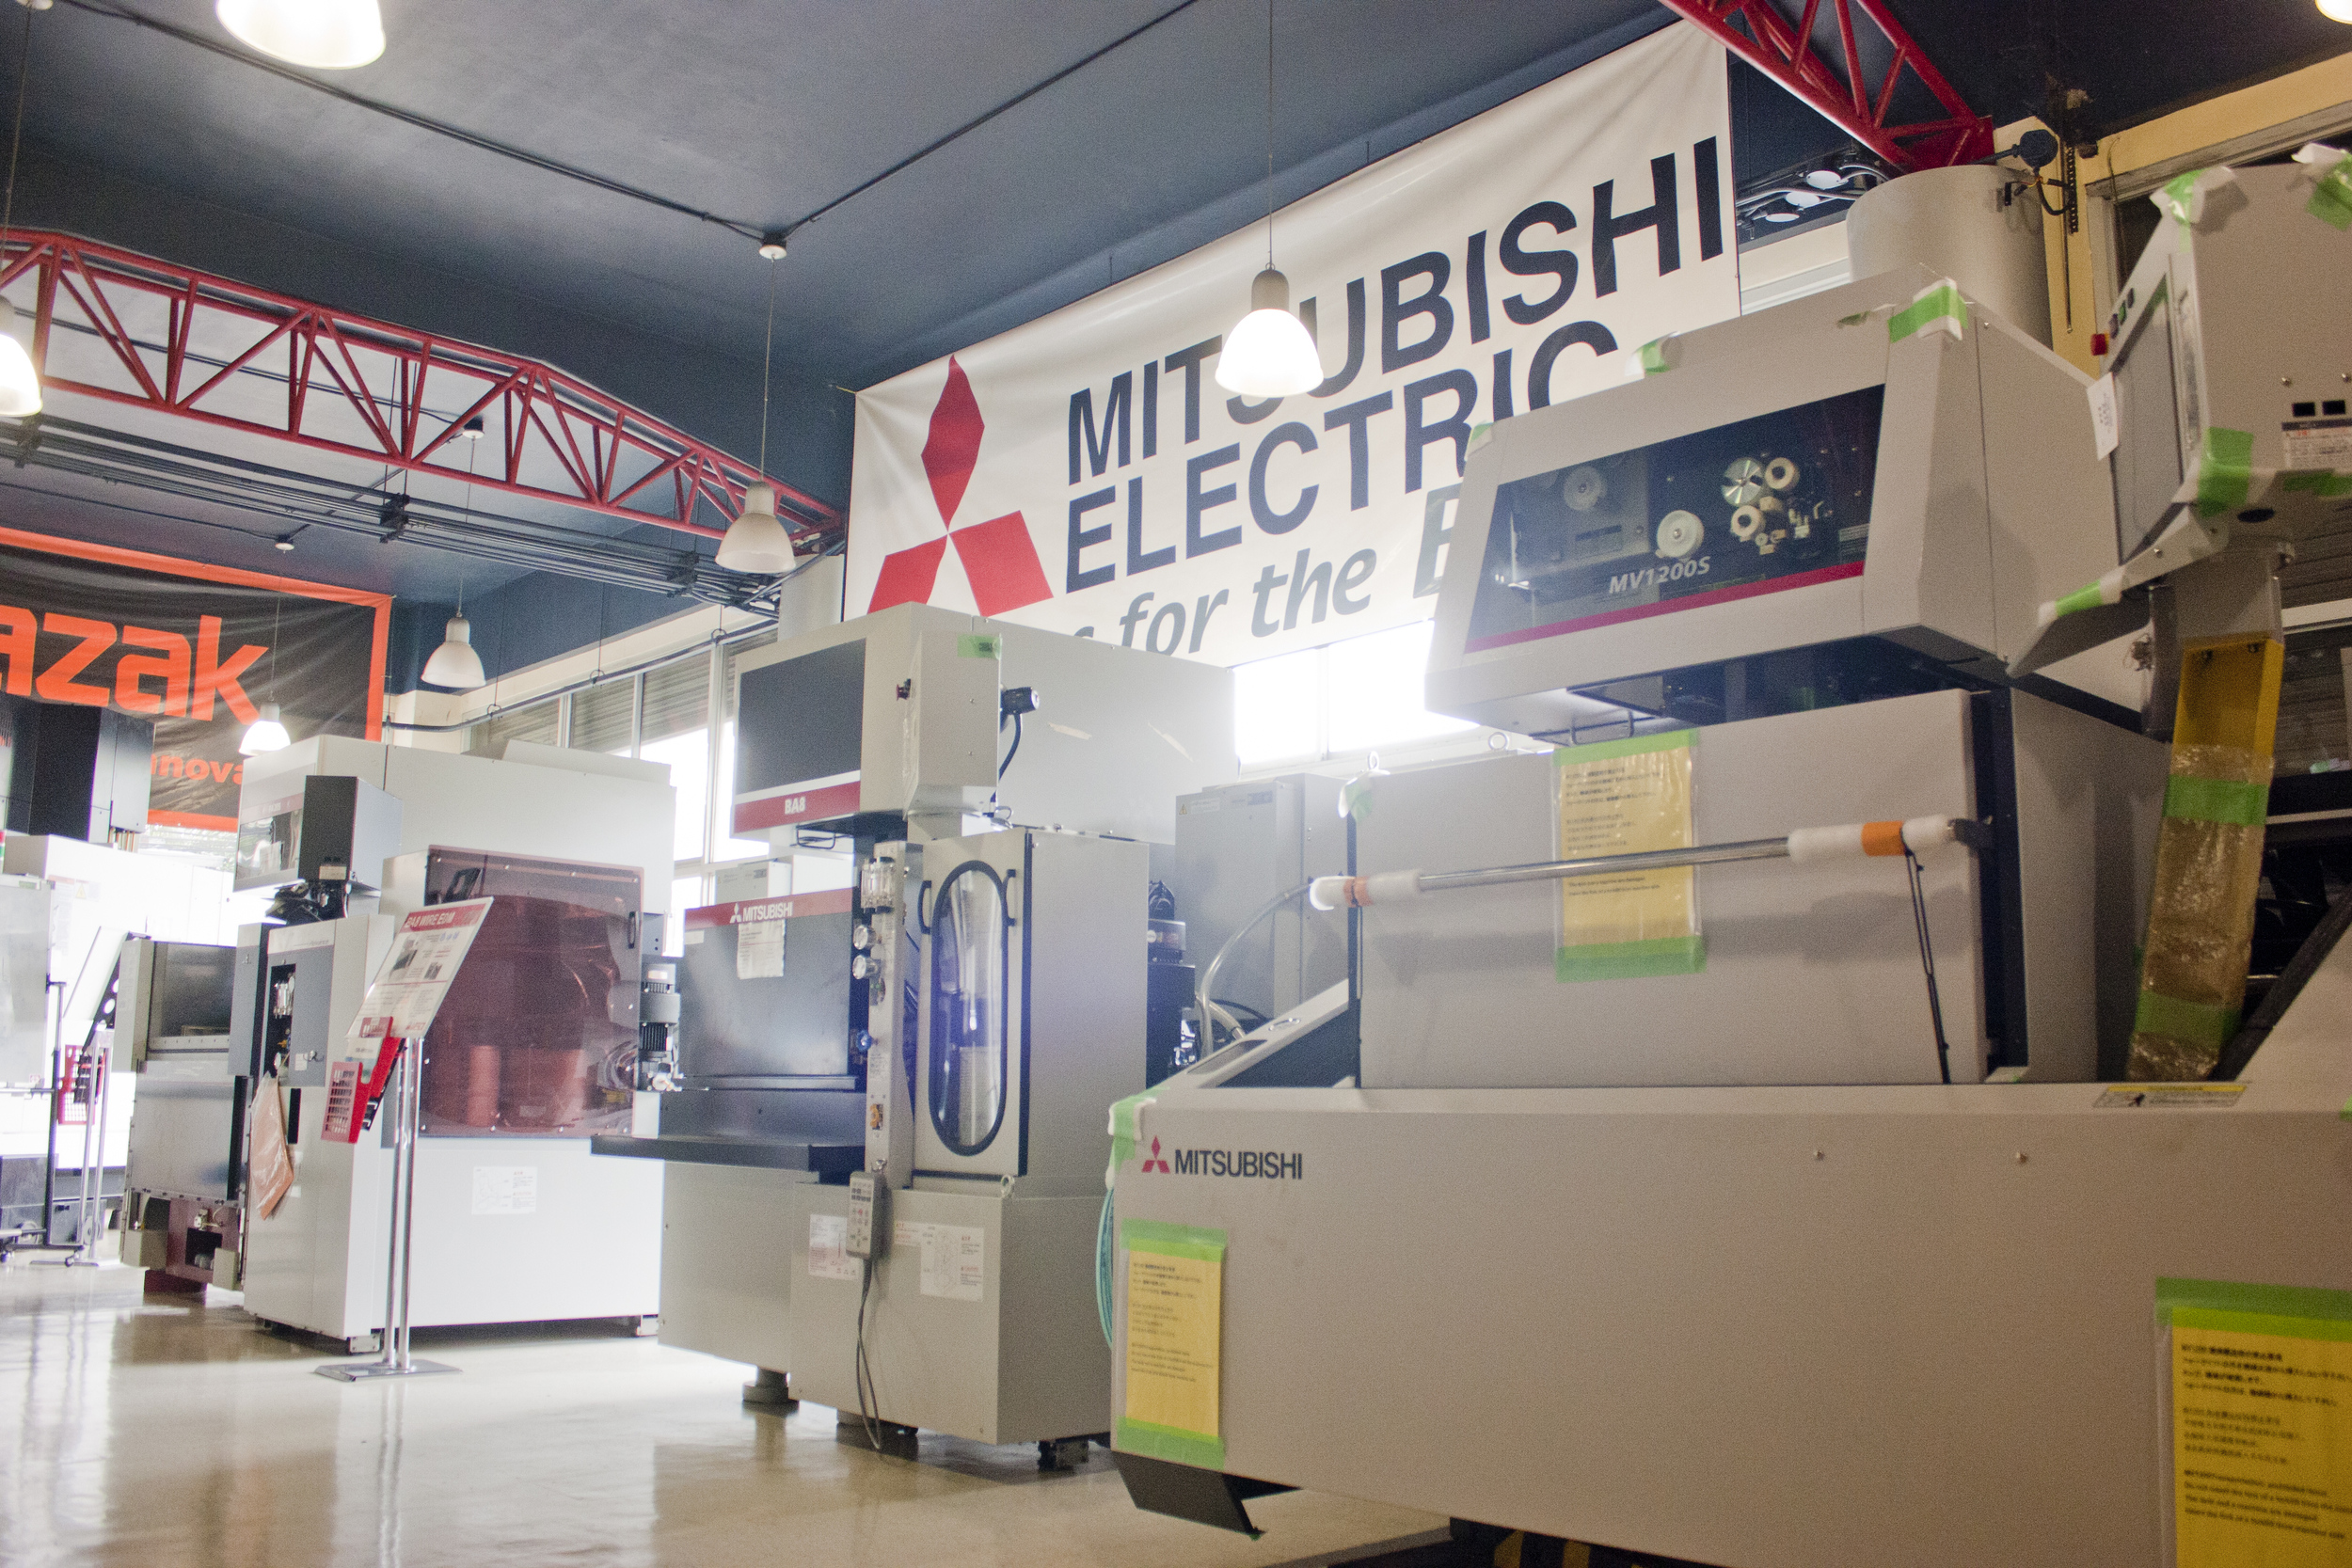 mitsubishi wirecut and edm solutions center.